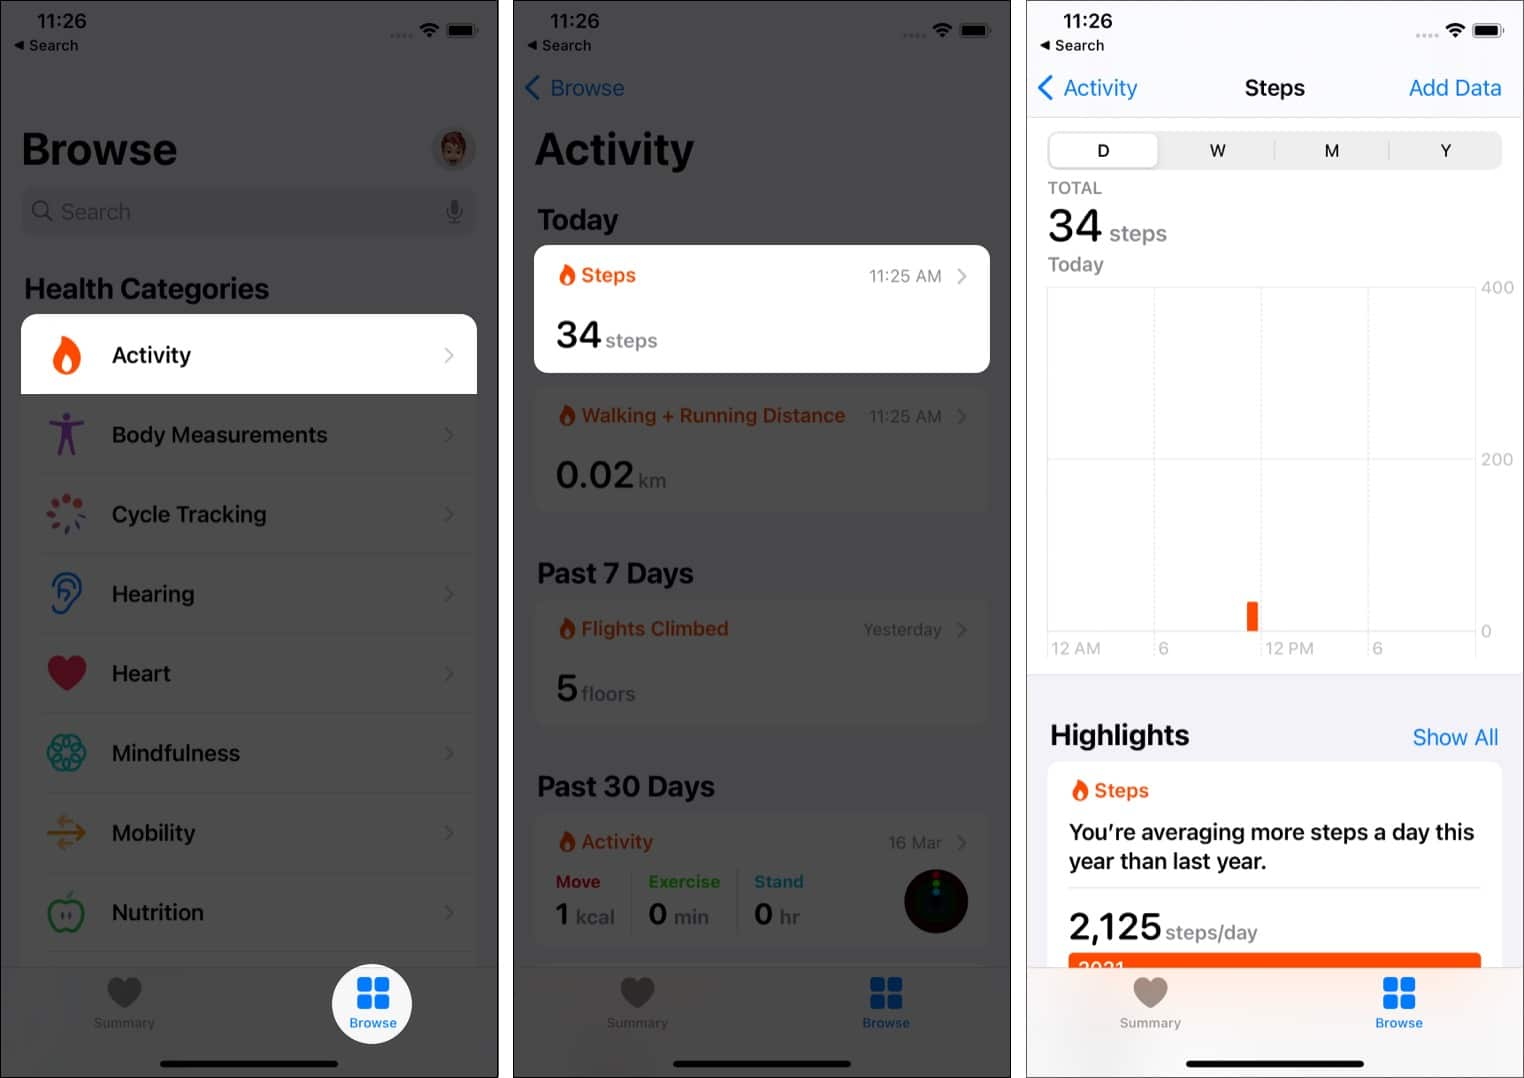 In iPhone Health app tap Browse, Activity, and then tap Steps